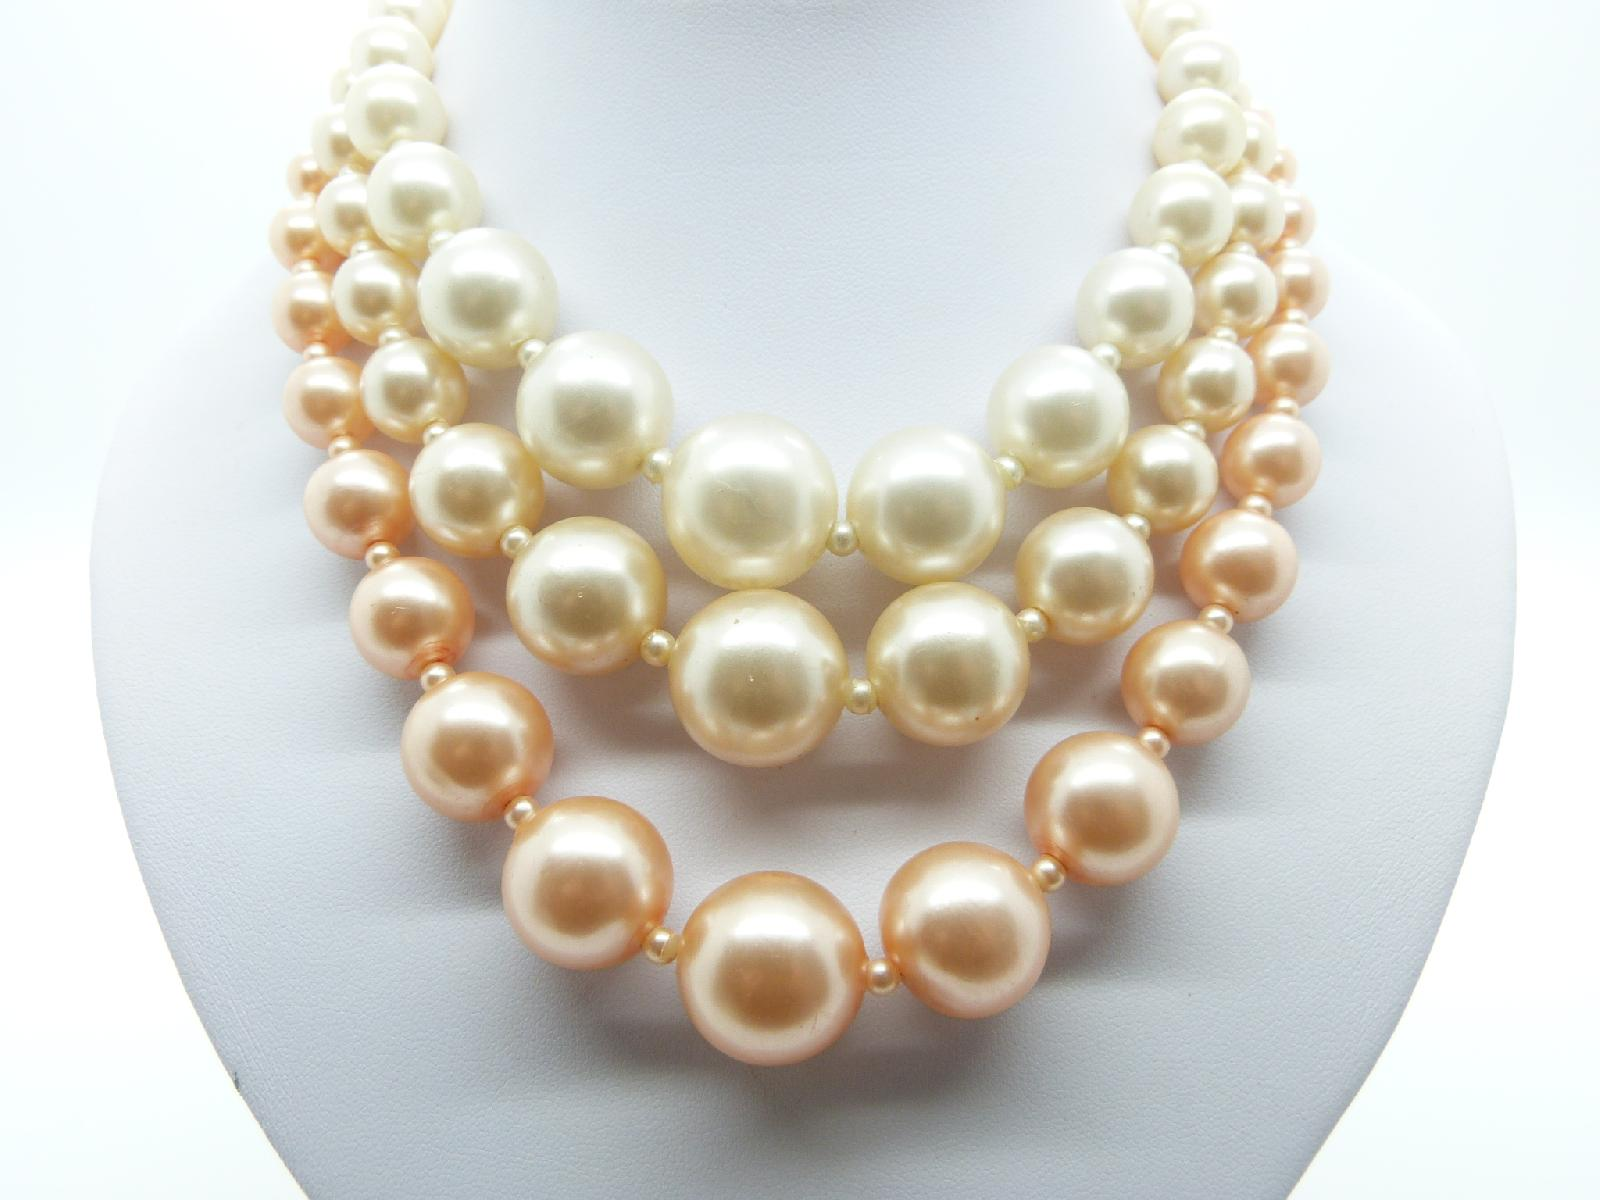 Vintage 50s Chunky Three Row White and Pink Faux Pearl Bead Necklace 47cms